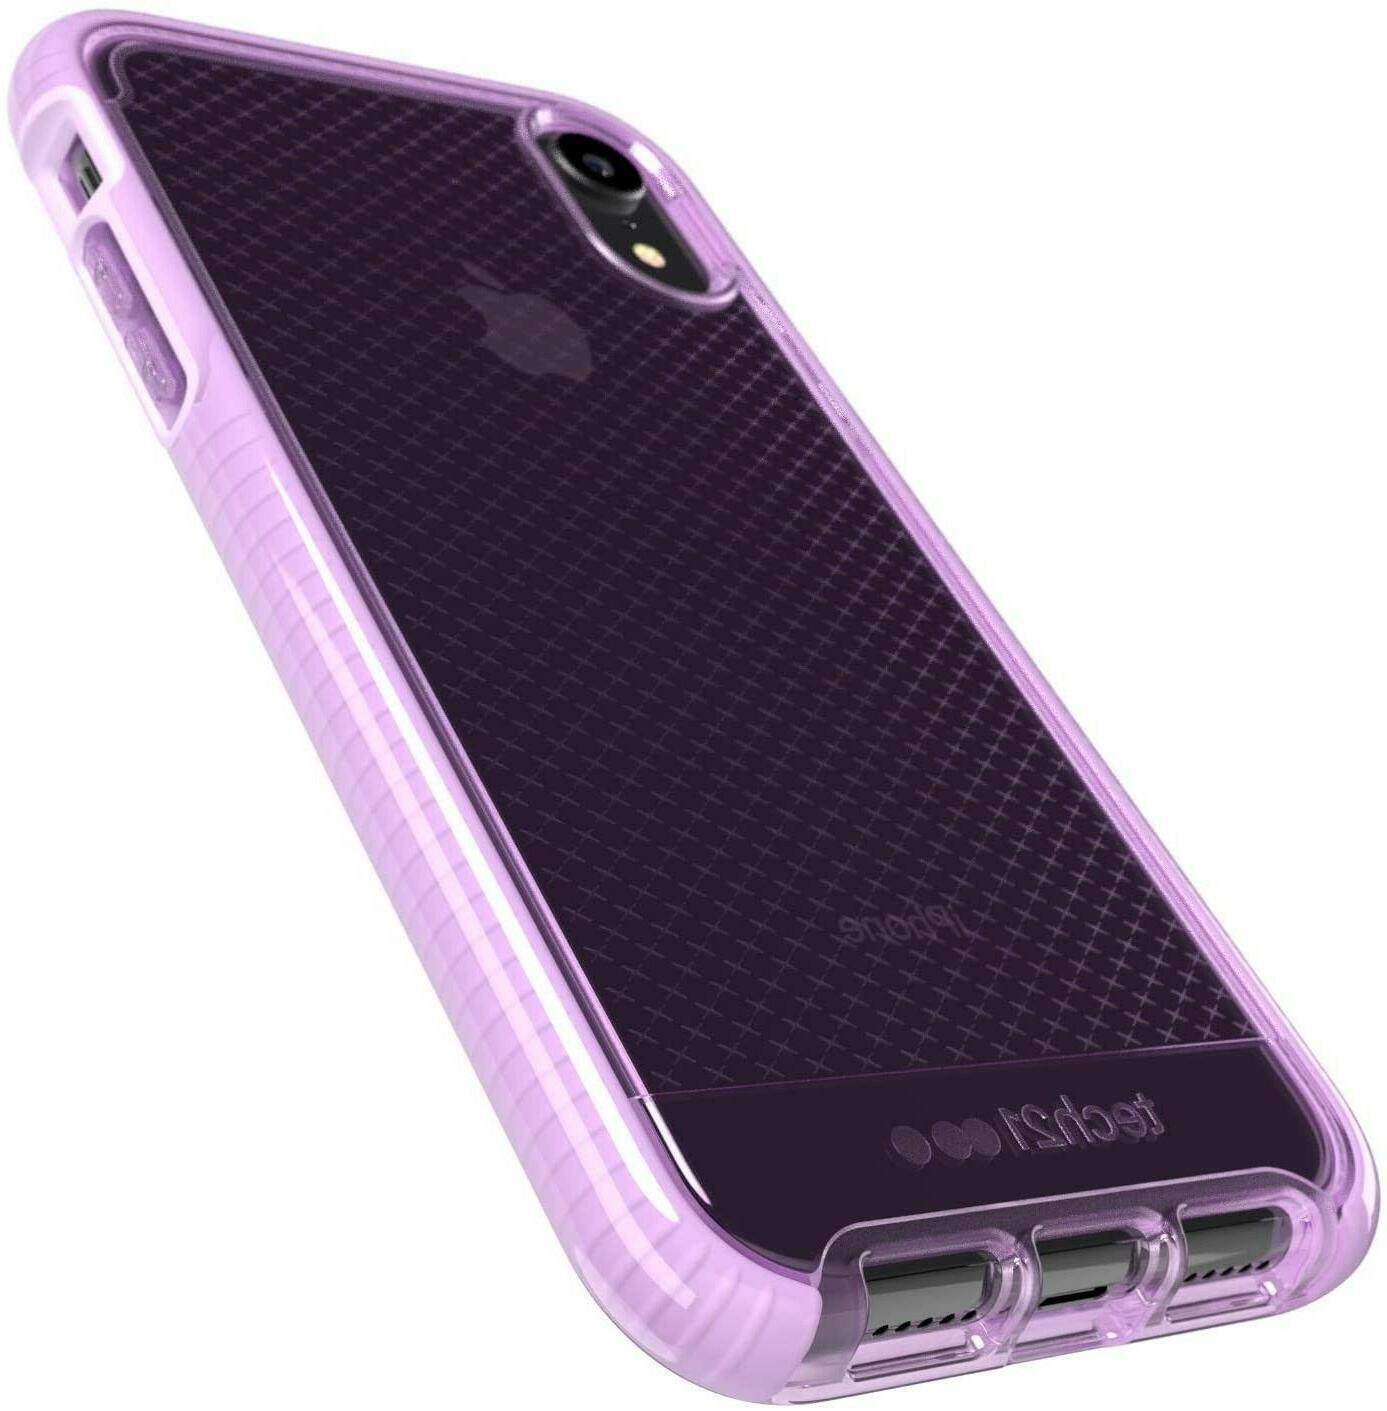 Tech21 Evo Ultra Slim Protection Apple - Orchid NEW